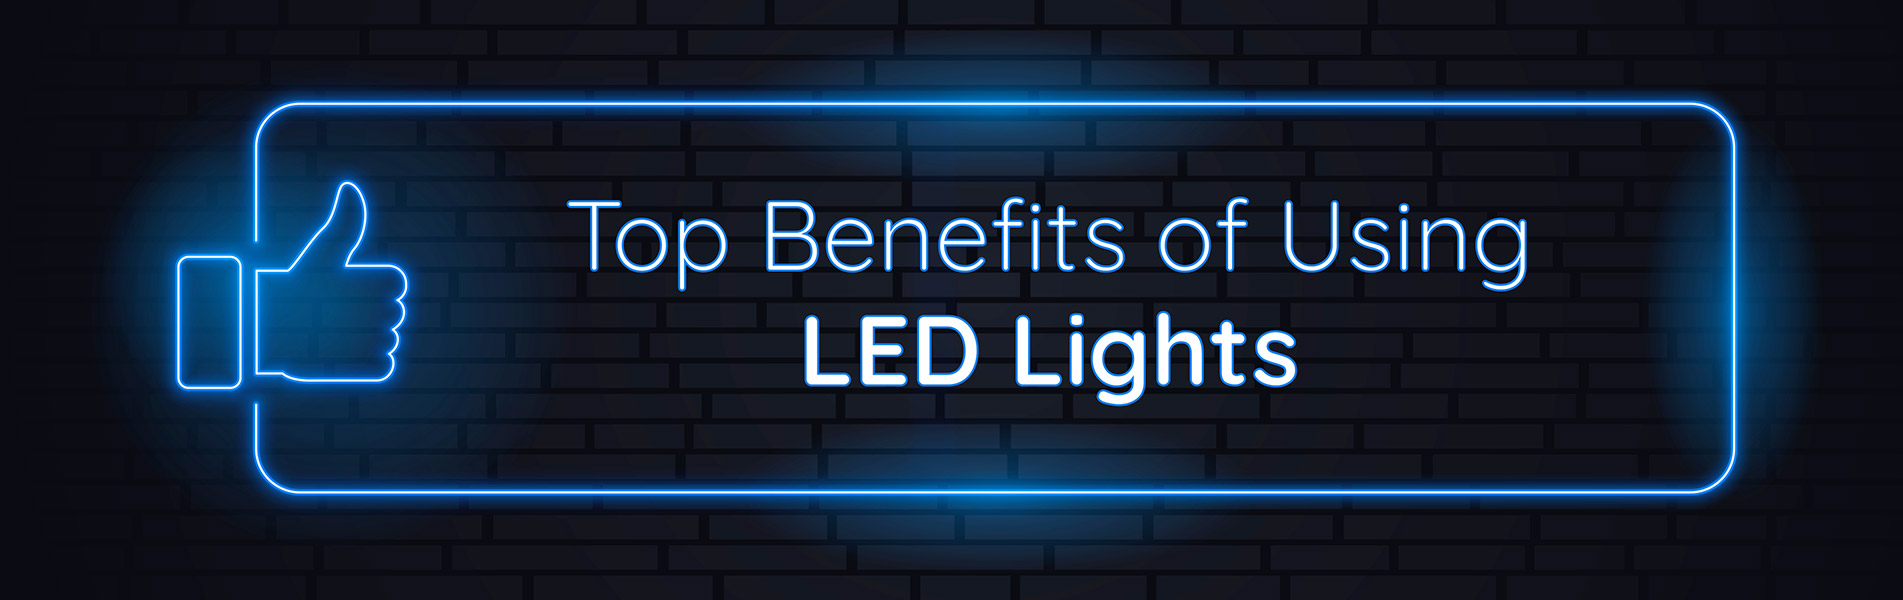 Top Benefits of Using LED Lights